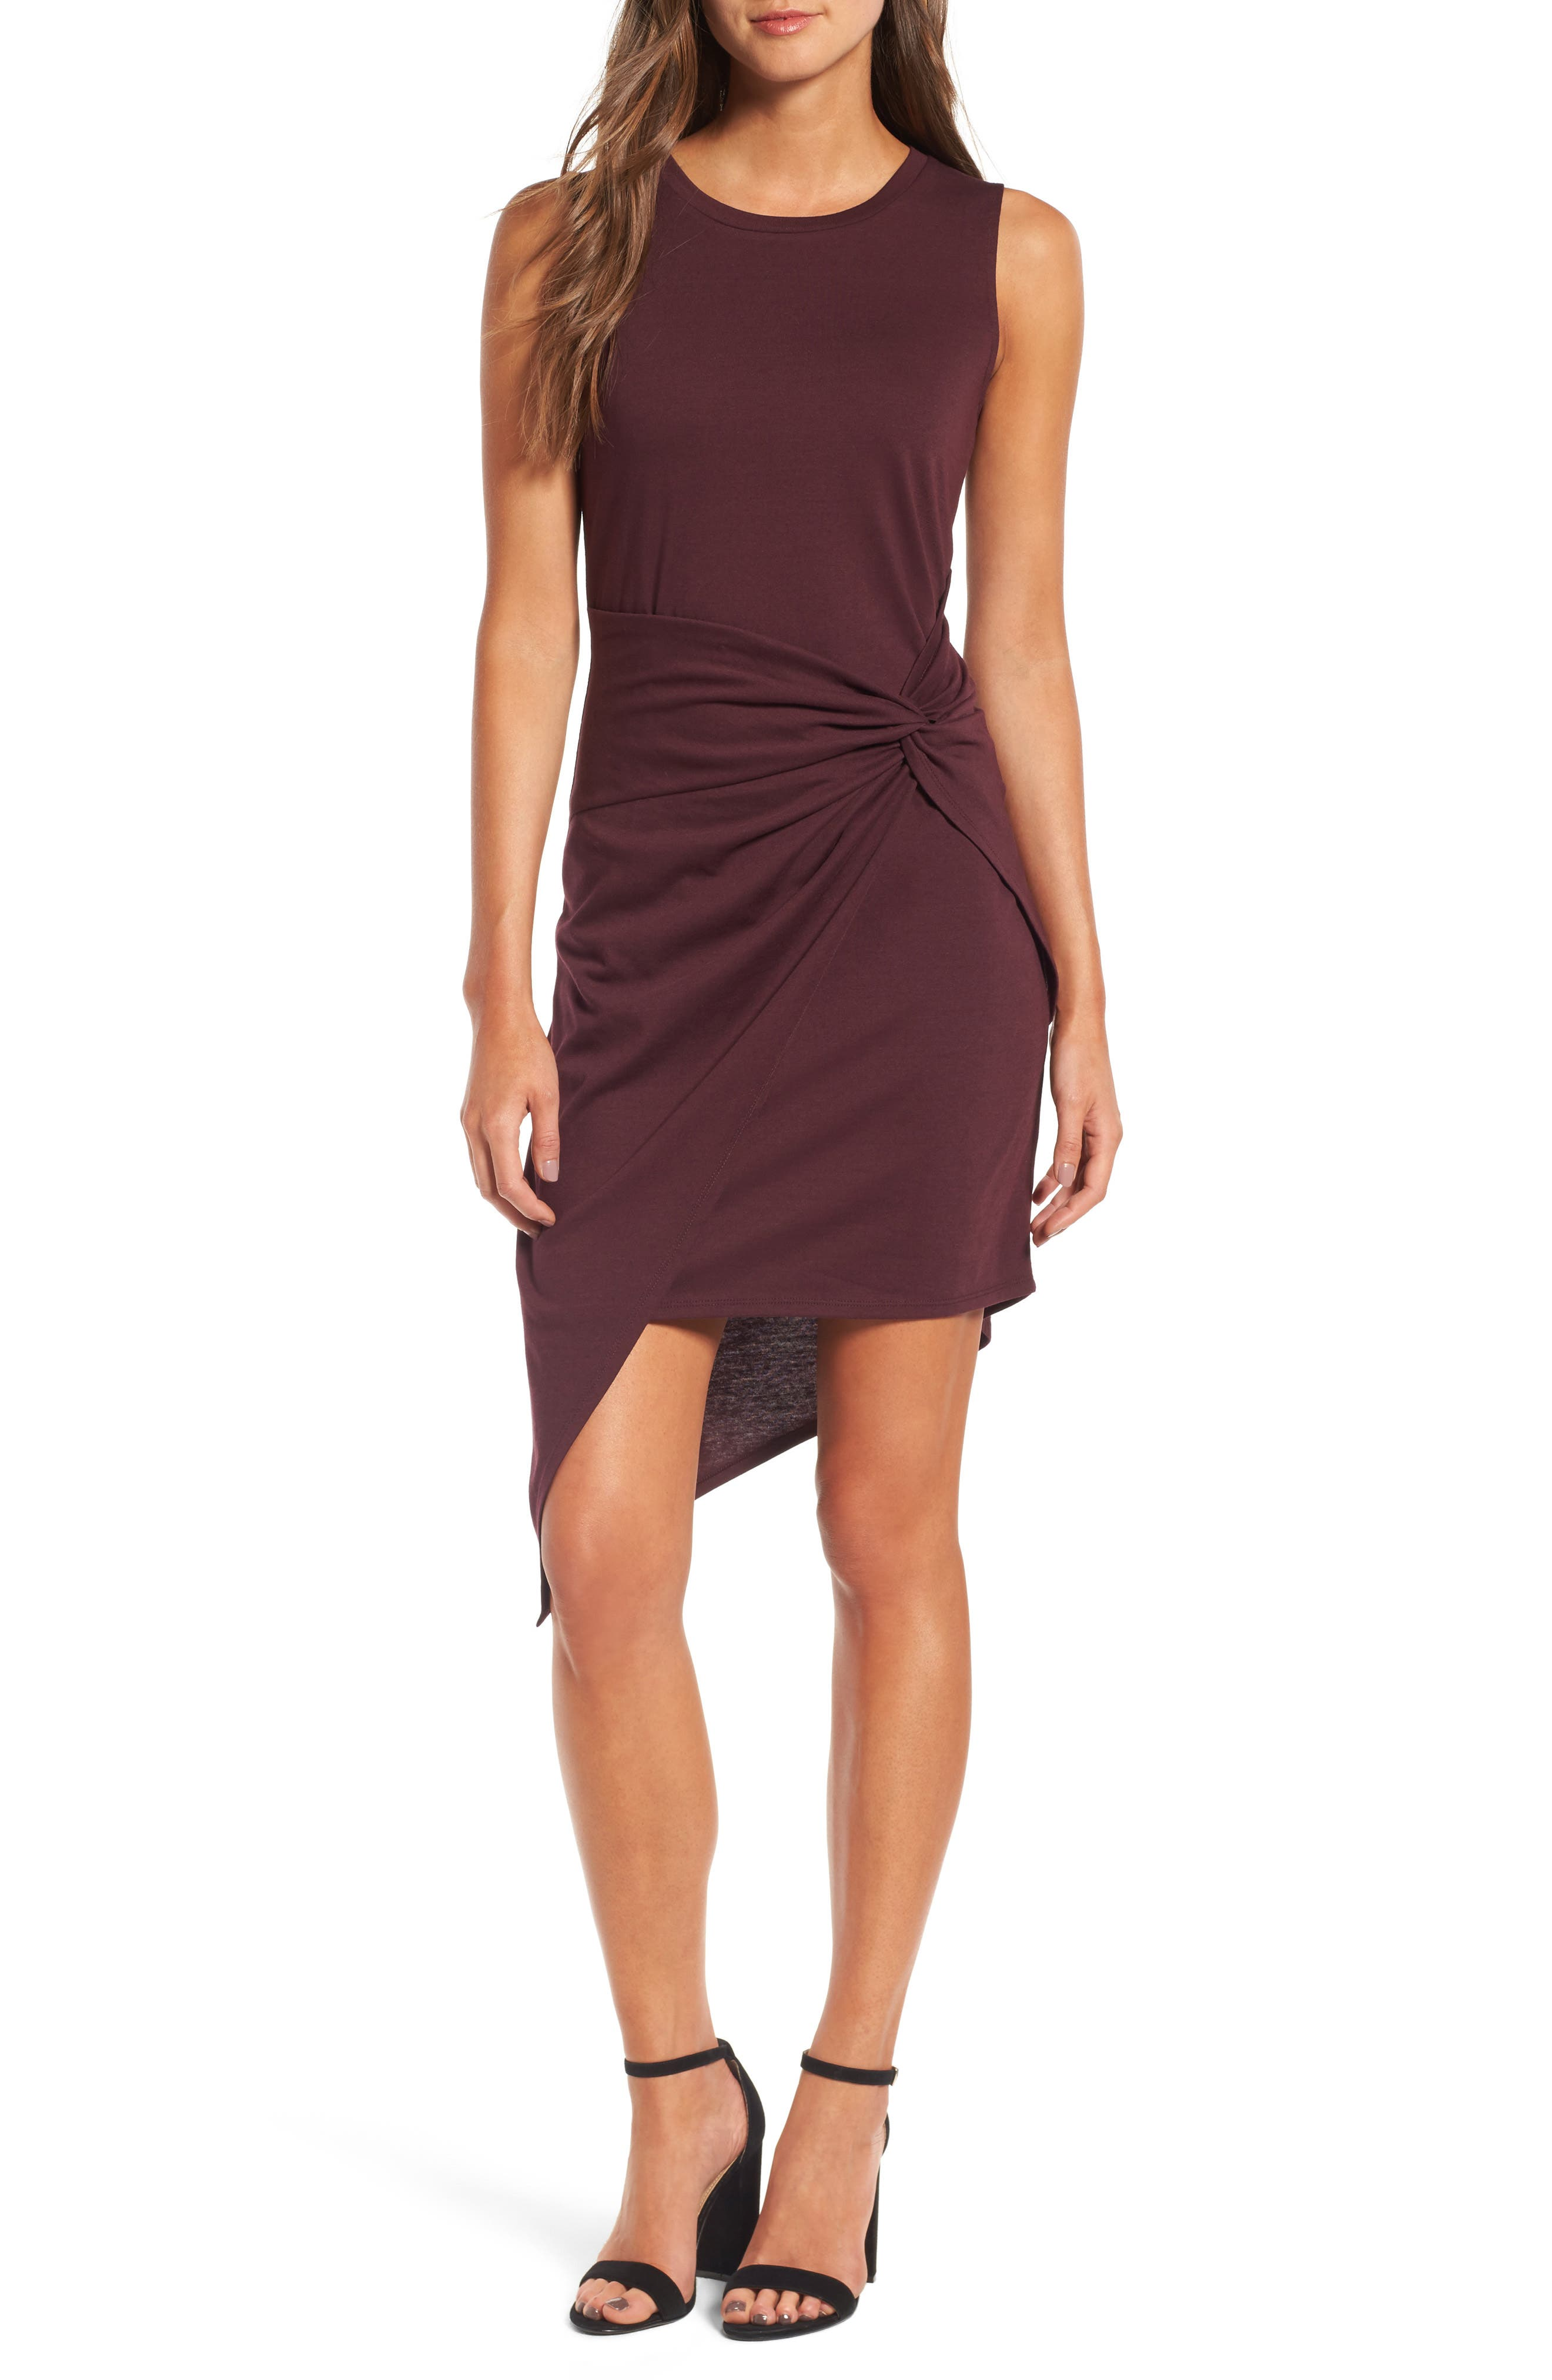 Cut from a cotton-blend fabric with just the right amount of stretch, this dress is a versatile workwear option. The twist front detail adds a chic slimming touch, .